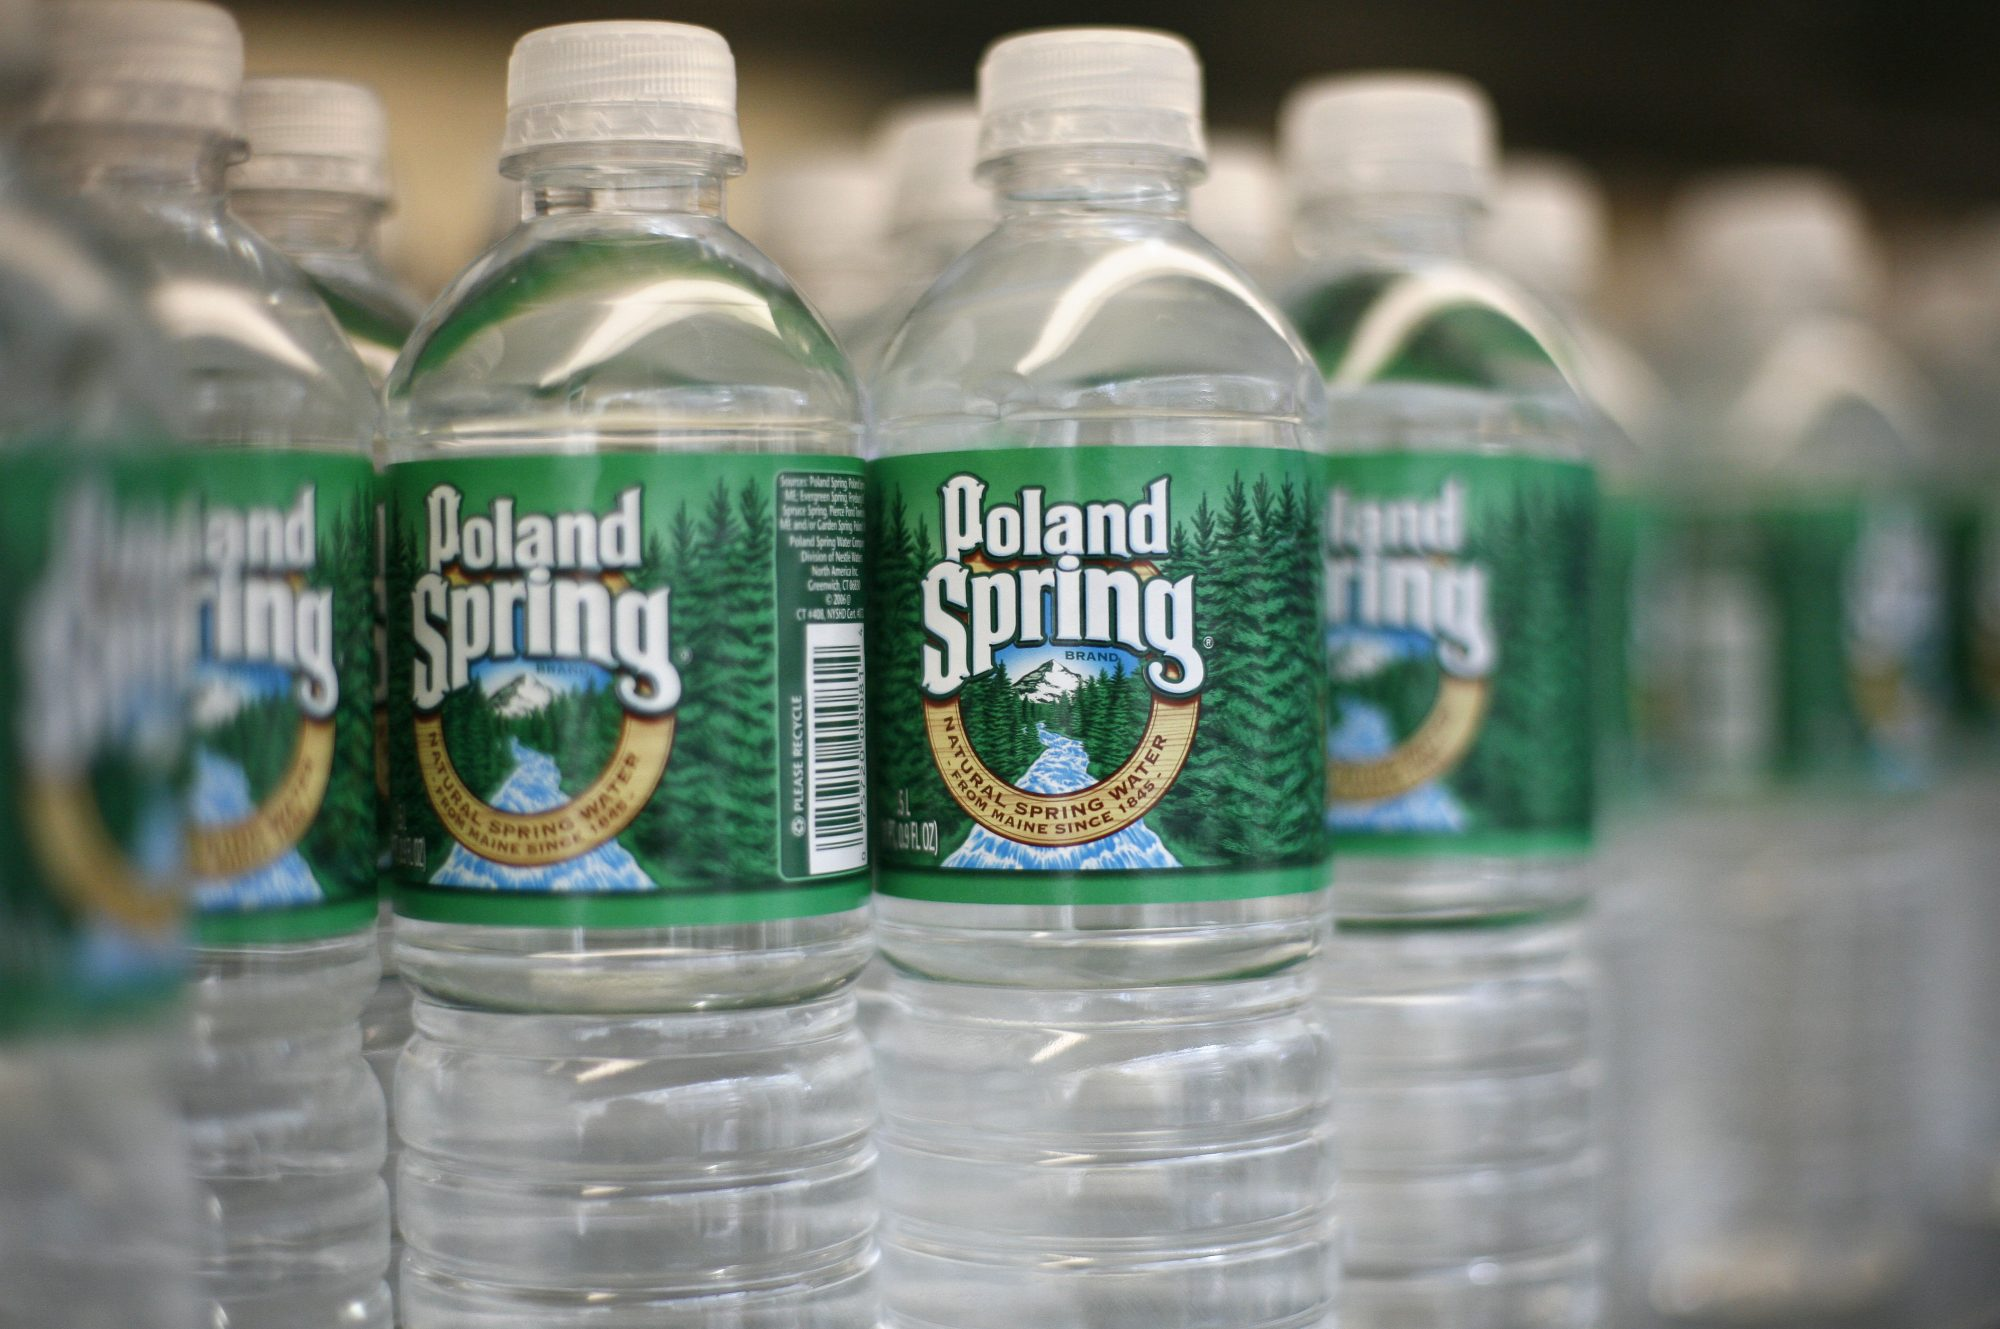 Bottles of Poland Spring water, are arranged on a shelf in N